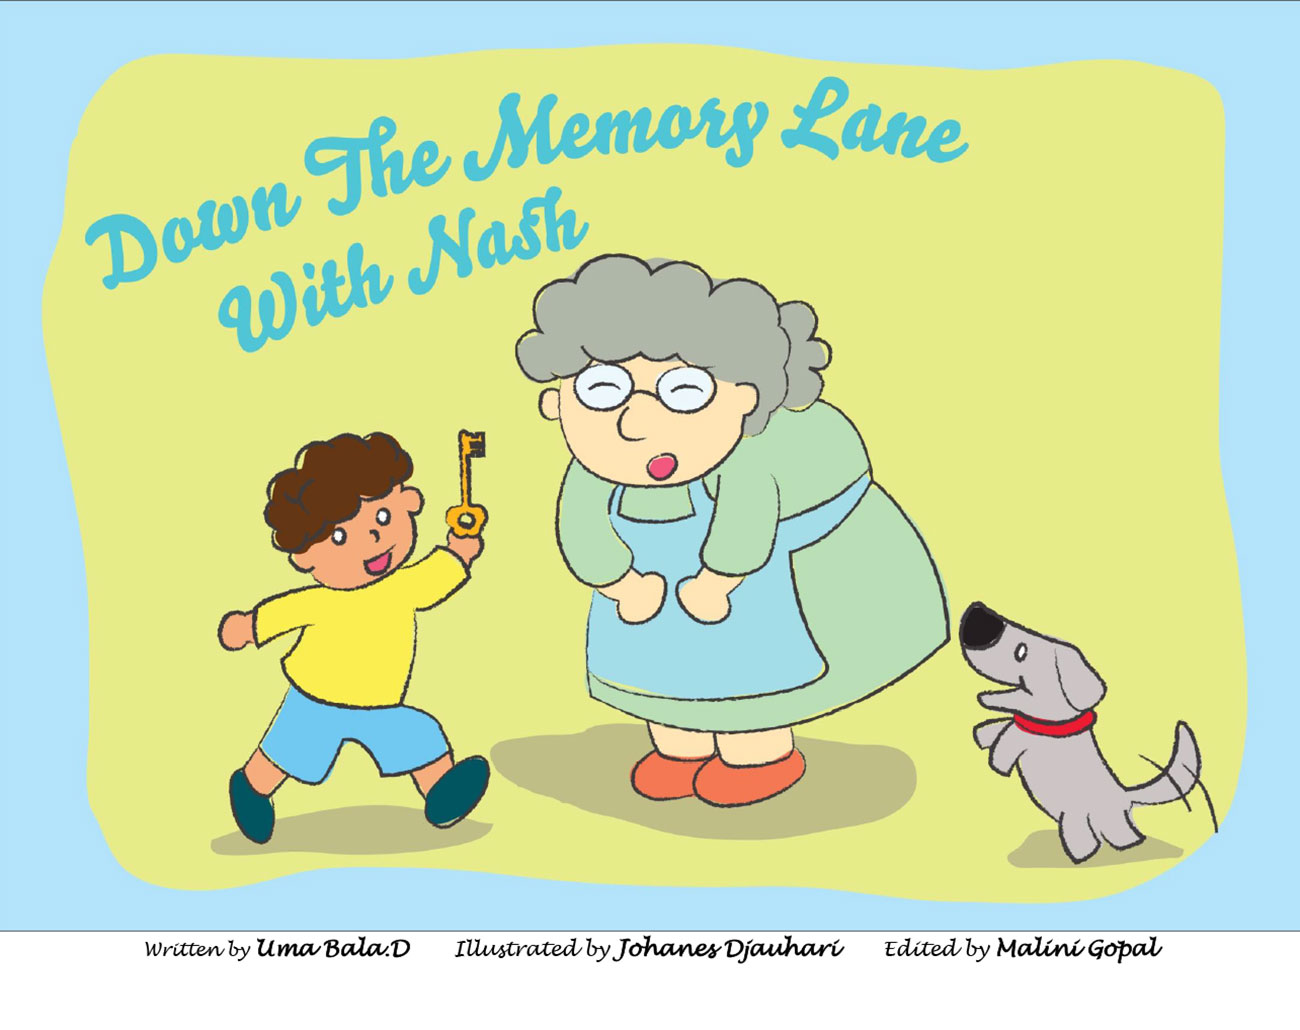 kids short story 'Down the memory lane with nash' by uma bala devarakonda - page 1